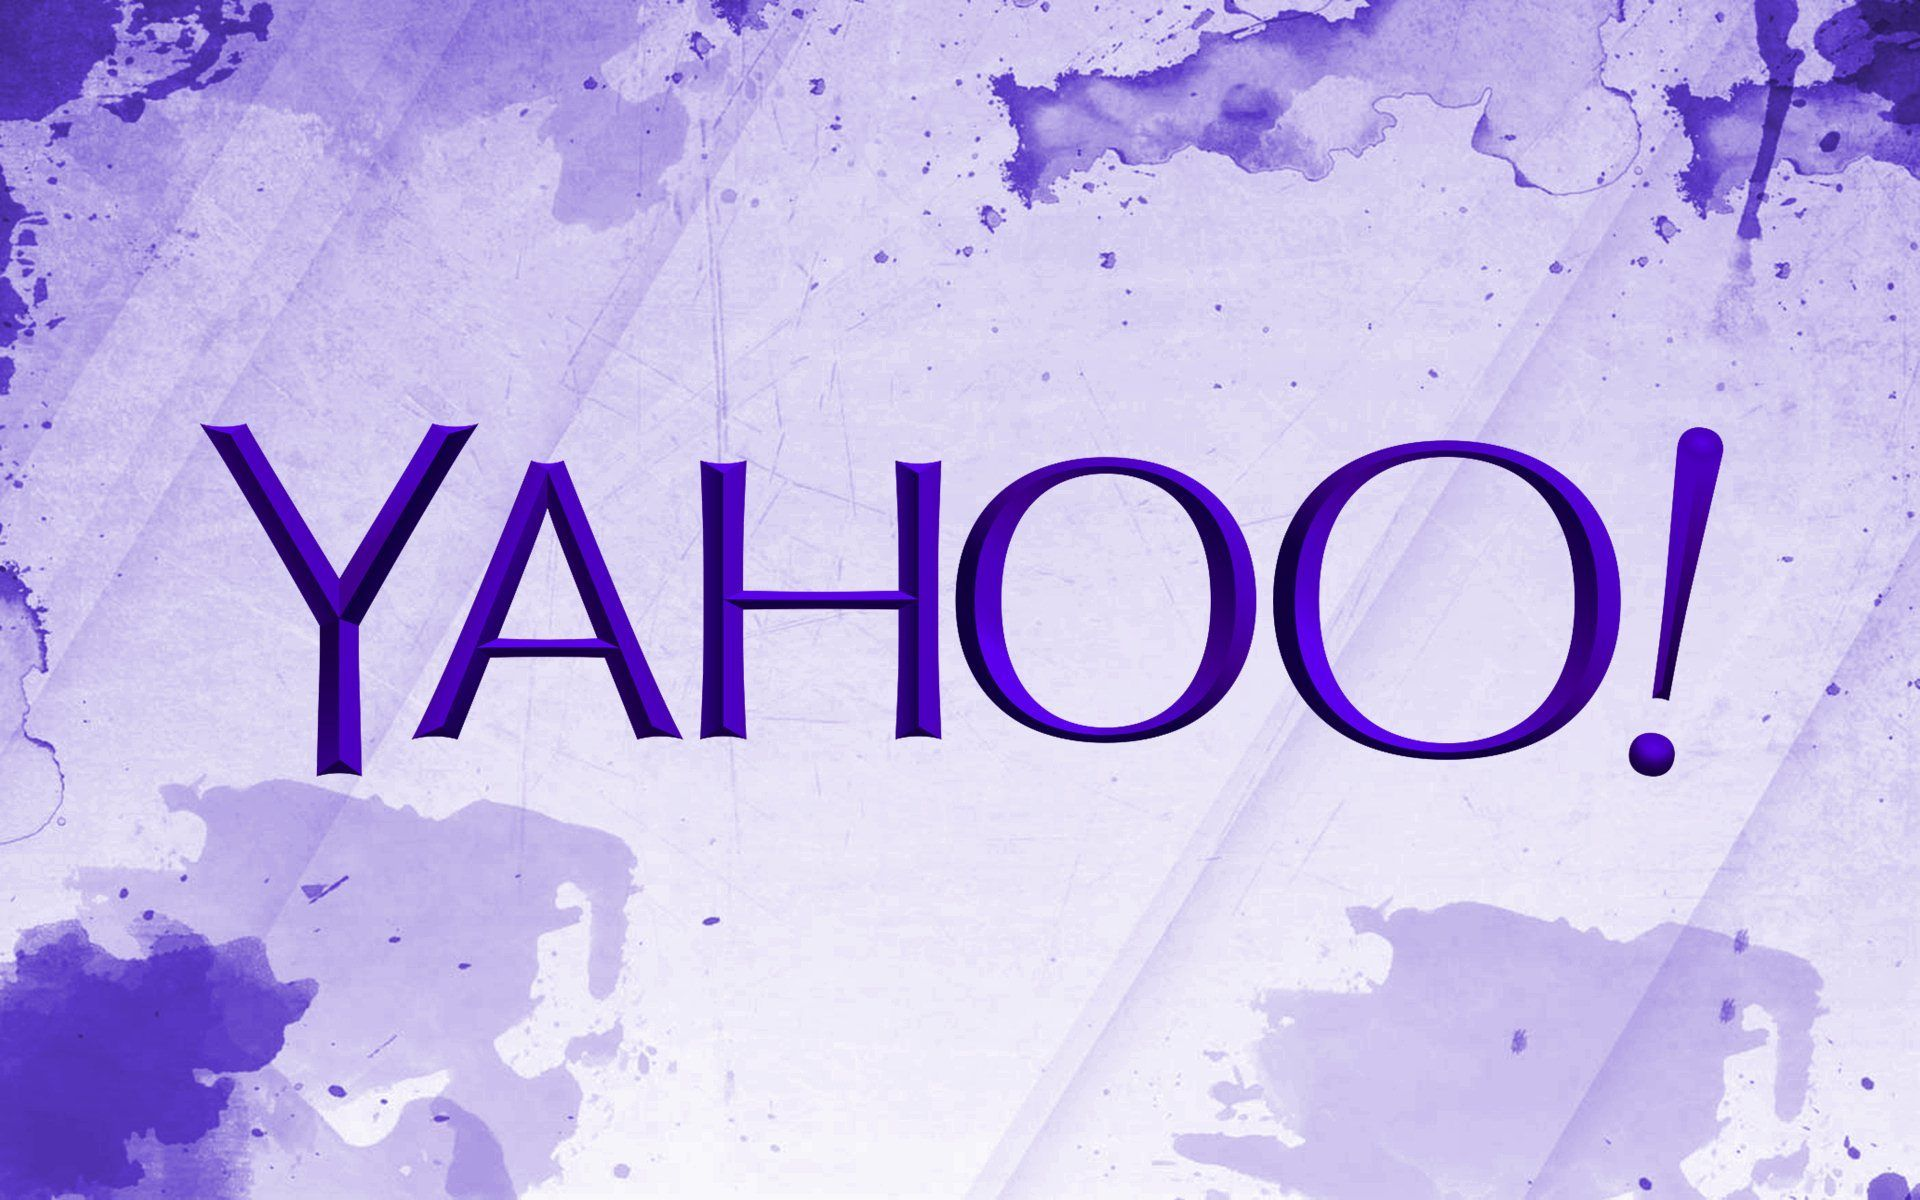 Abstract Yahoo Wallpaper 63934 1920x1200px 1920x1200